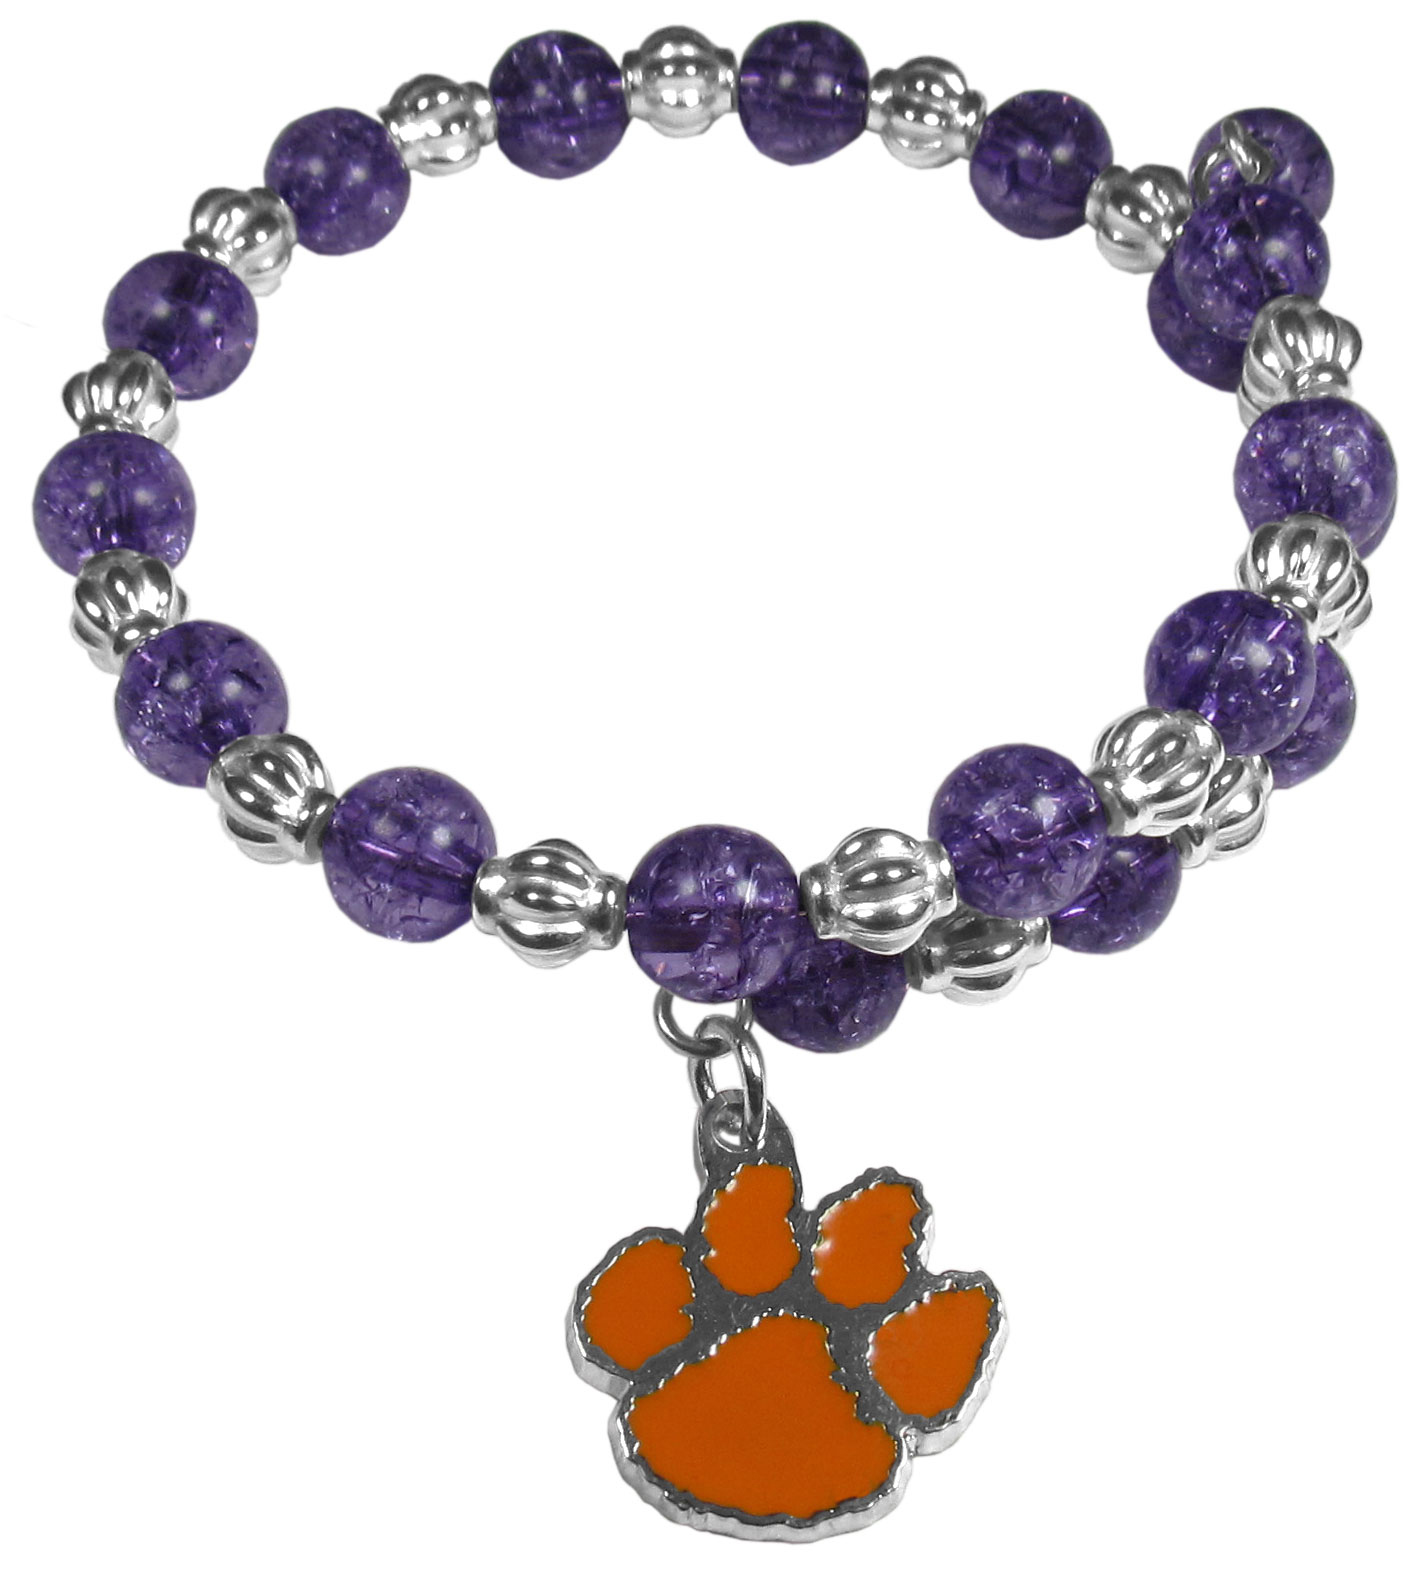 Clemson Tigers Bead Memory Wire Bracelet - Our Clemson Tigers memory wire bead bracelet is trendy way to show off your love of the game. The double wrap bracelet is completely covered in 7.5 mm crystals that are broken up with silvertoned beads creating a designer look with a sporty twist. The bracelet features a fully cast, metal team charm that has expertly enameled team colors. This fashion jewelry piece is a must-have for the die-hard fan that chic look that can dress up any outfit.